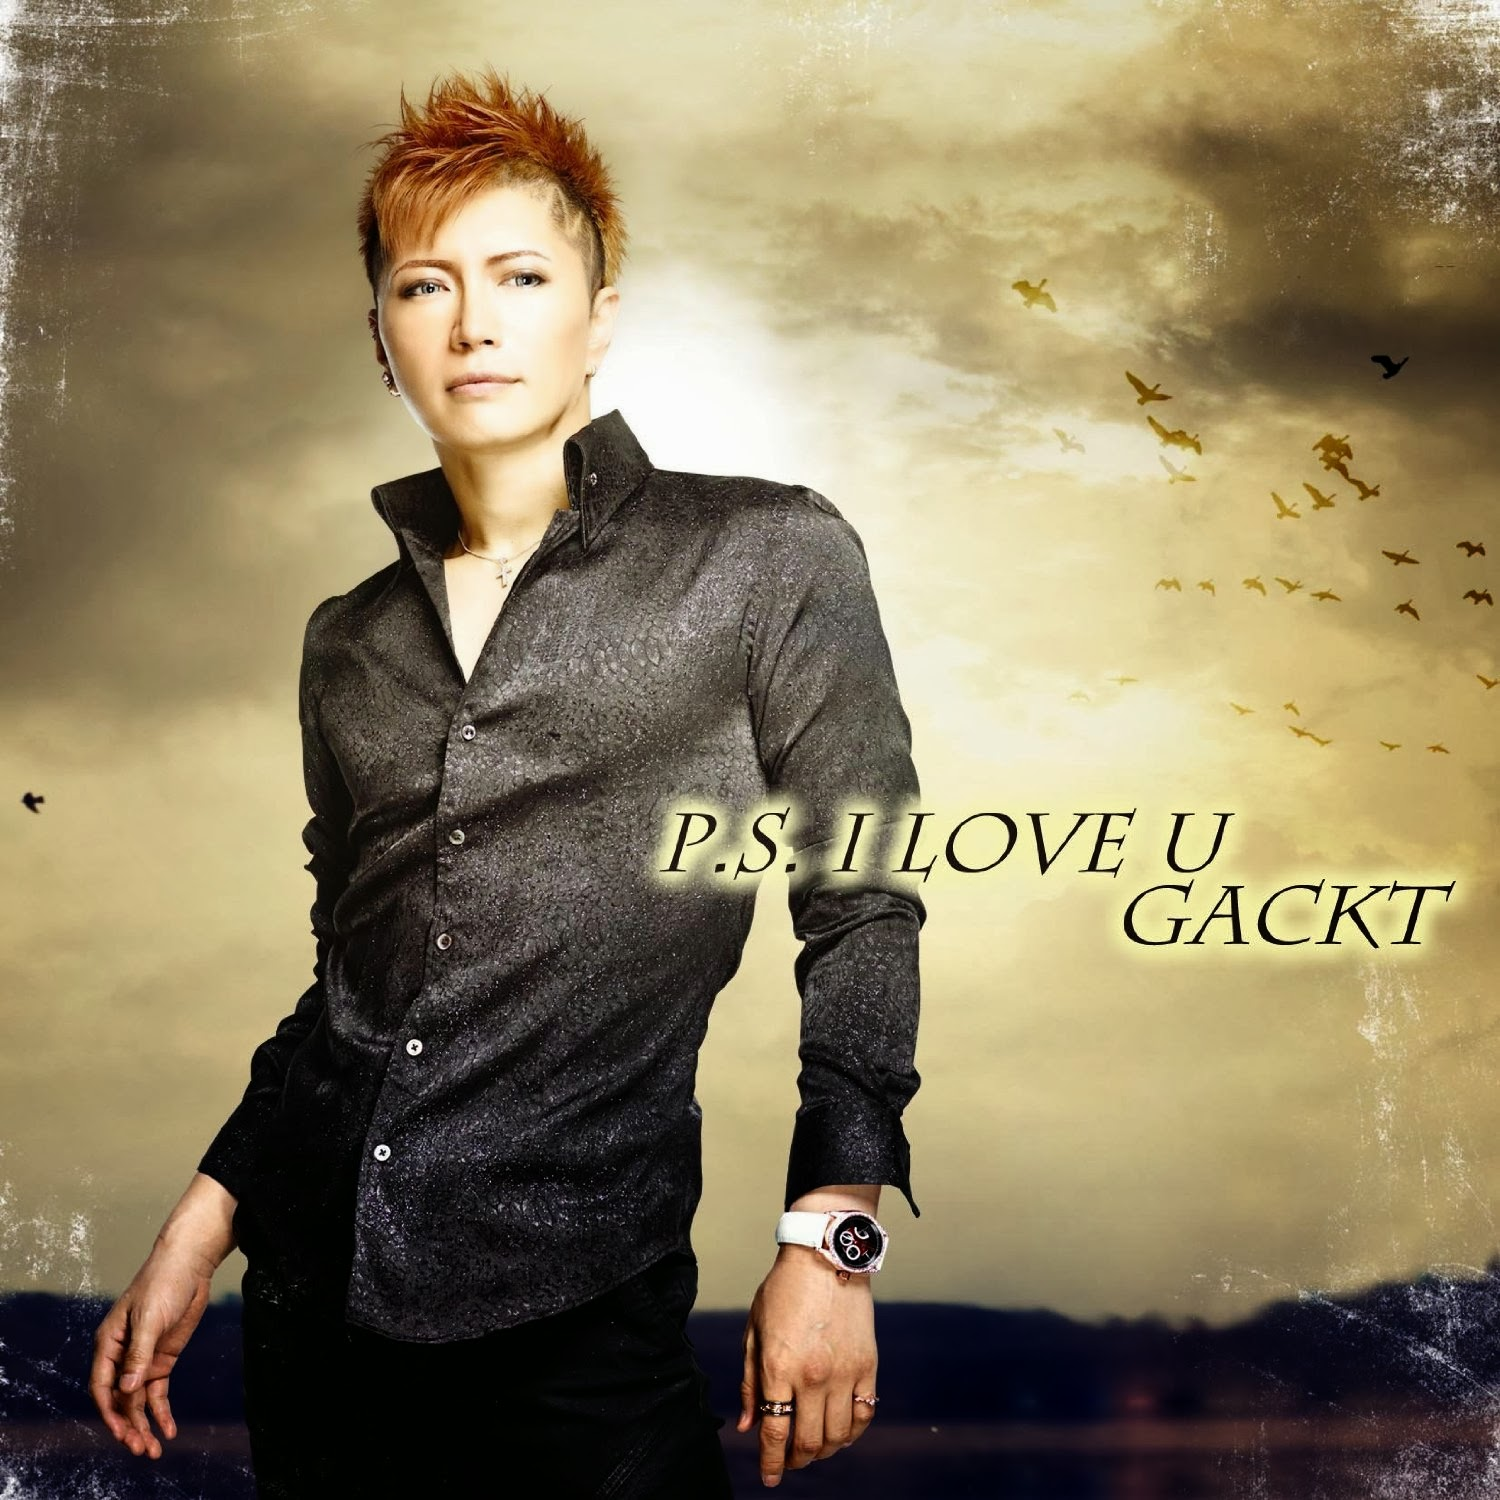 lirik gackt ps i love you